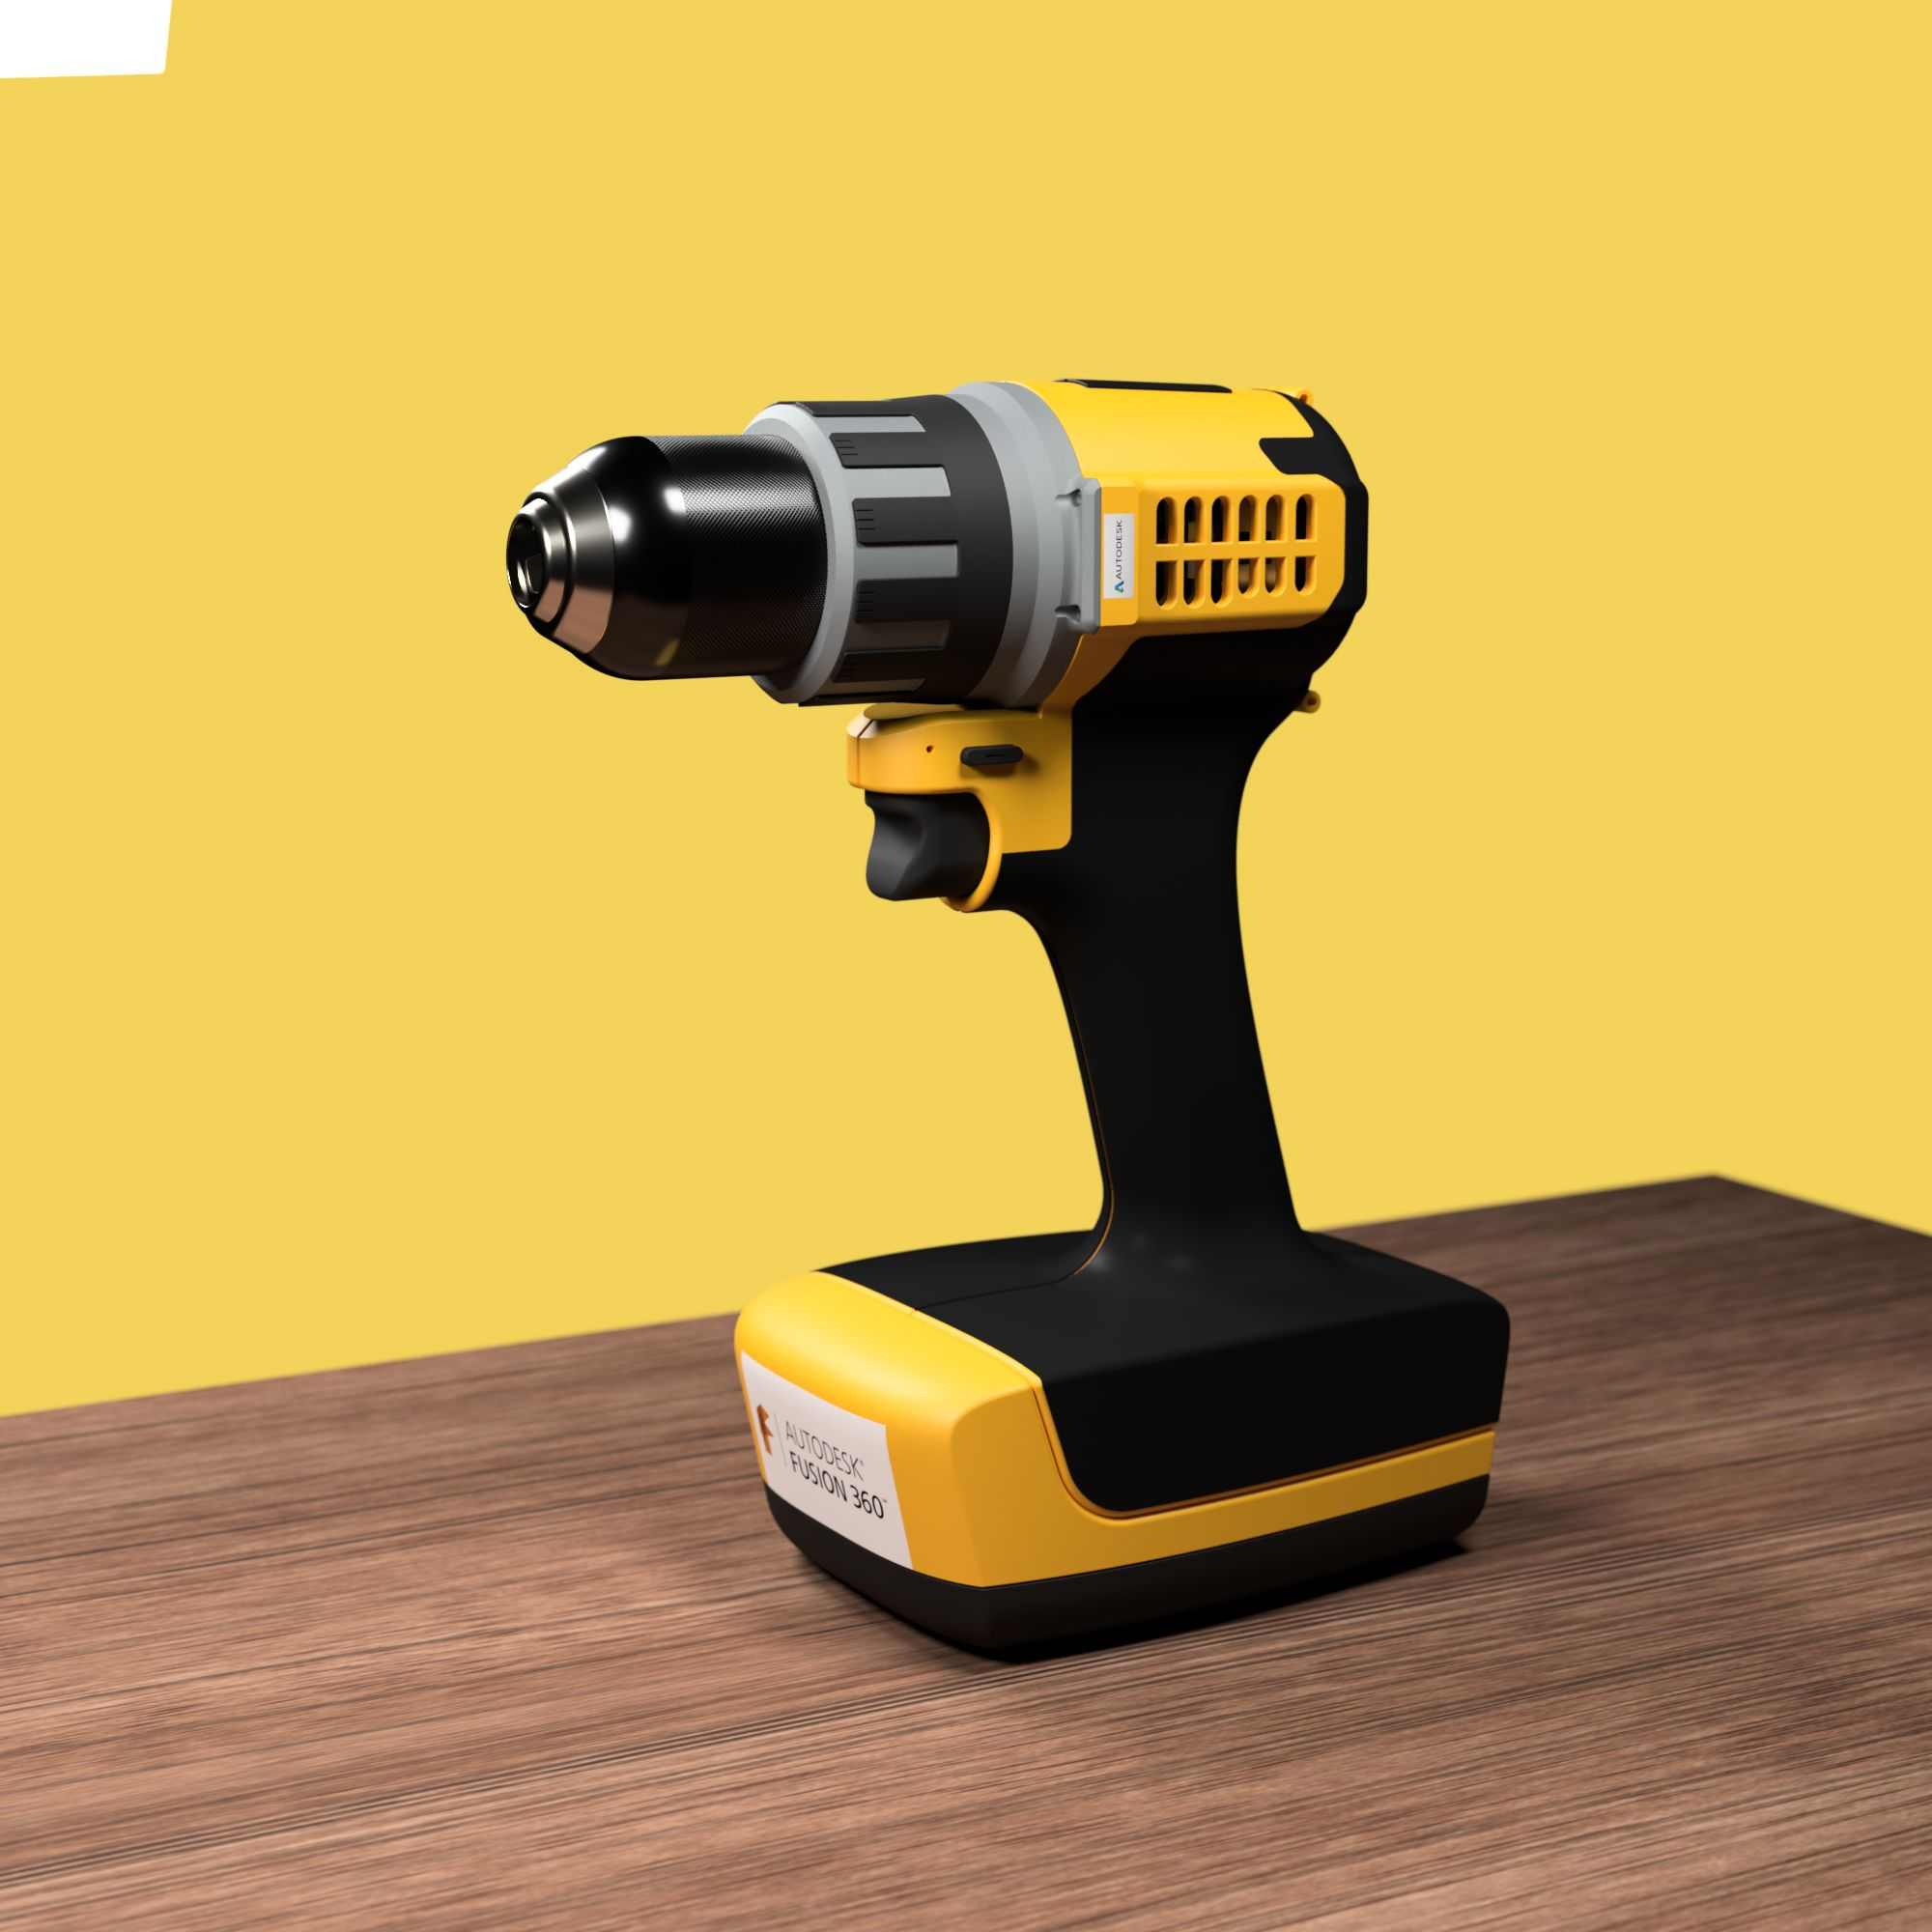 Dc-power-drill-v2-2017-jan-16-01-52-10am-000-customizedview26180122472-3500-3500